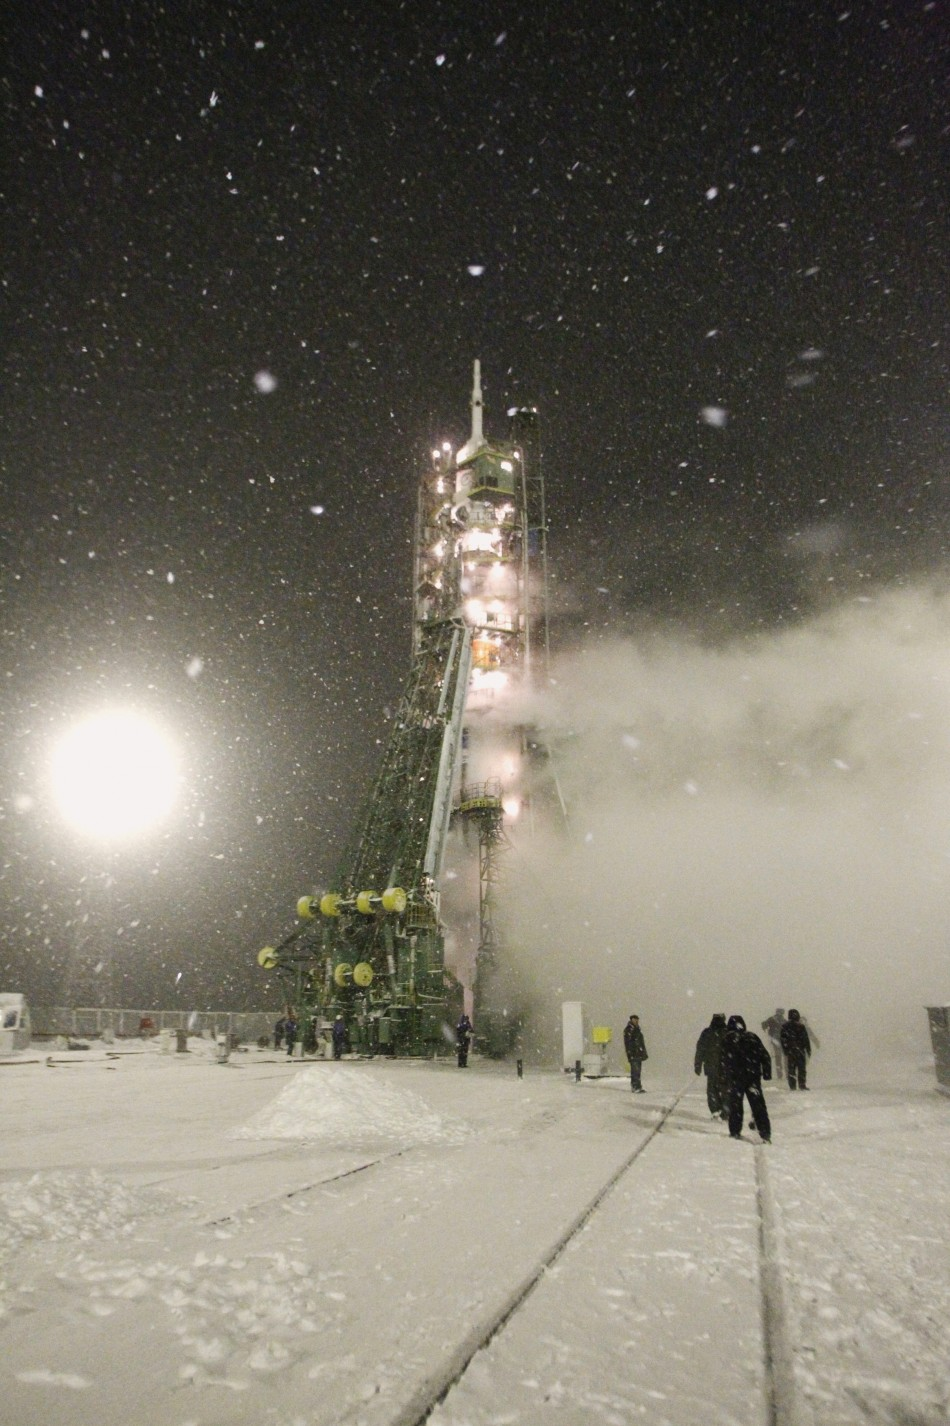 The Soyuz TMA-22 spacecraft rests on its launch pad at Baikonur cosmodrome